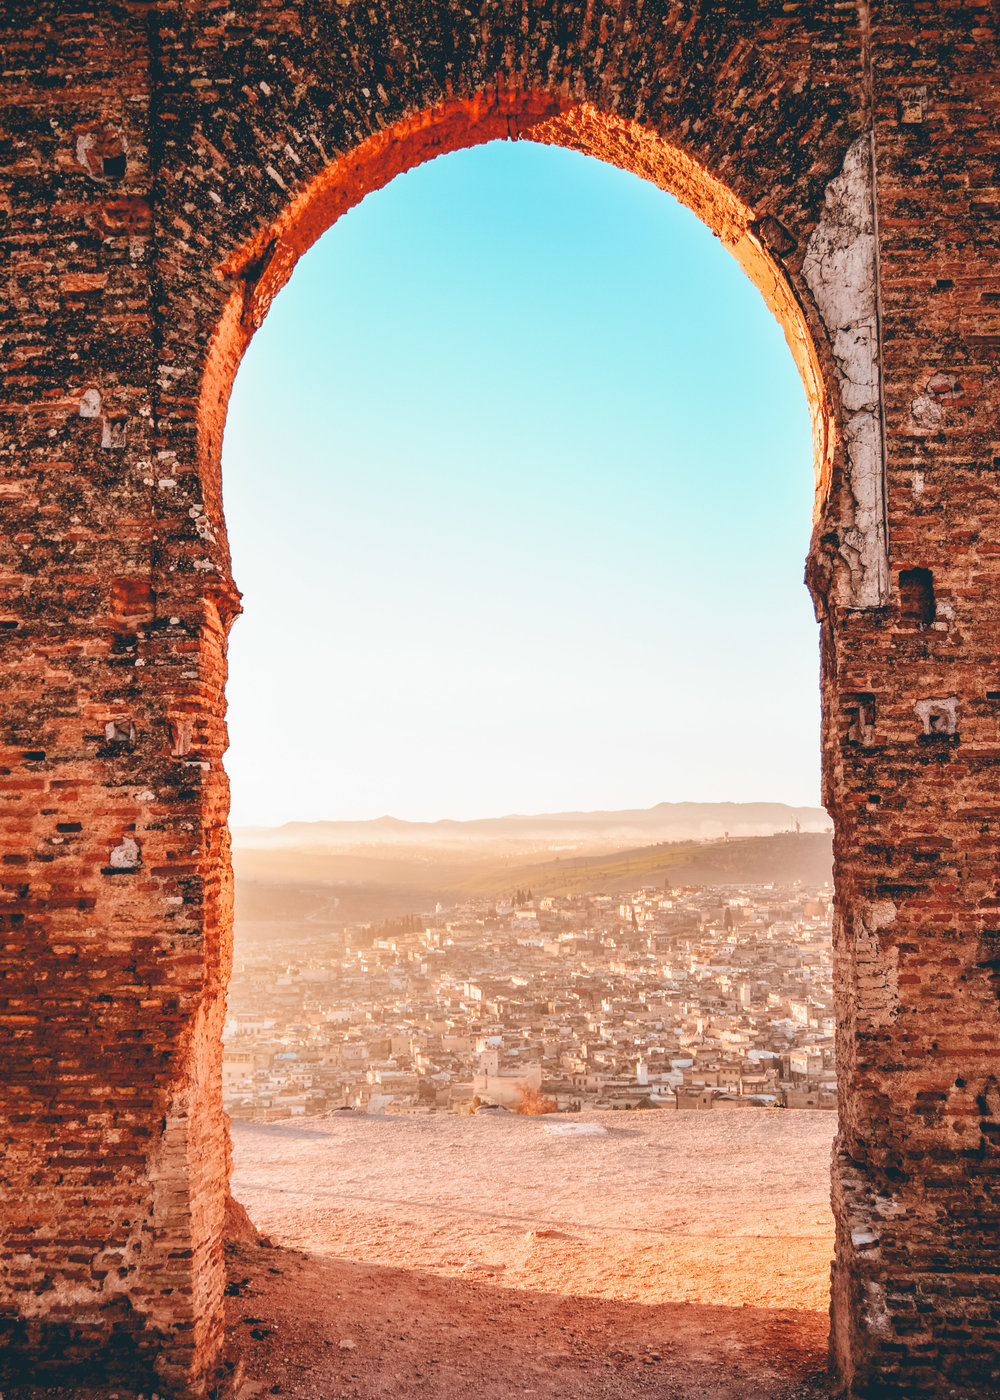 Fez morocco arch view of medina